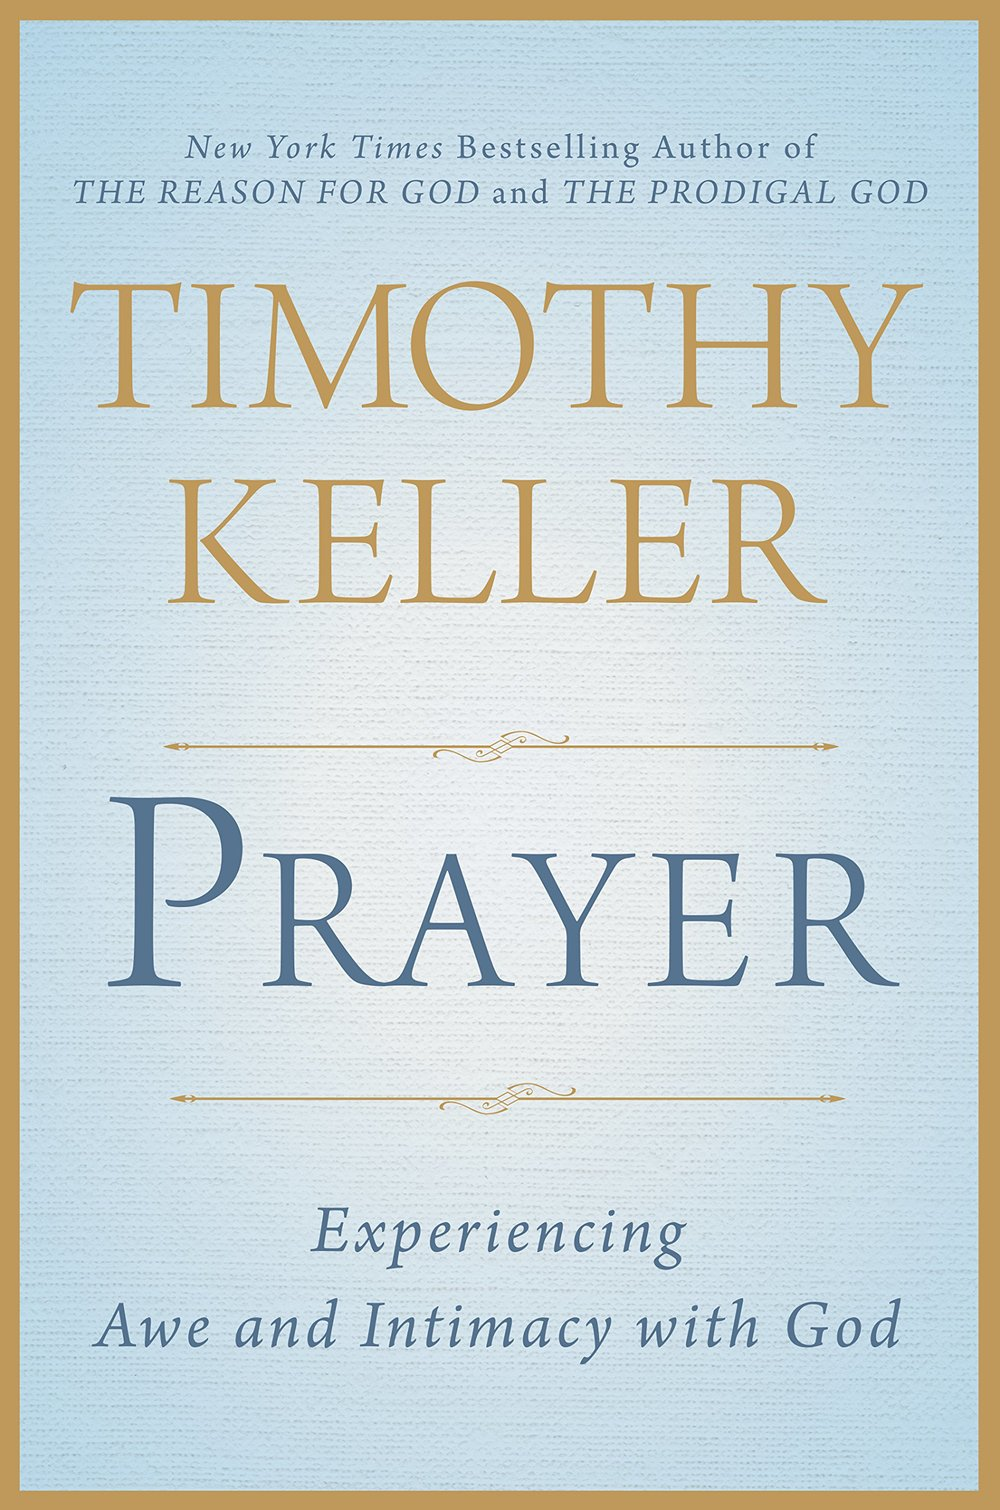 TIM KELLER PRAYER.jpg